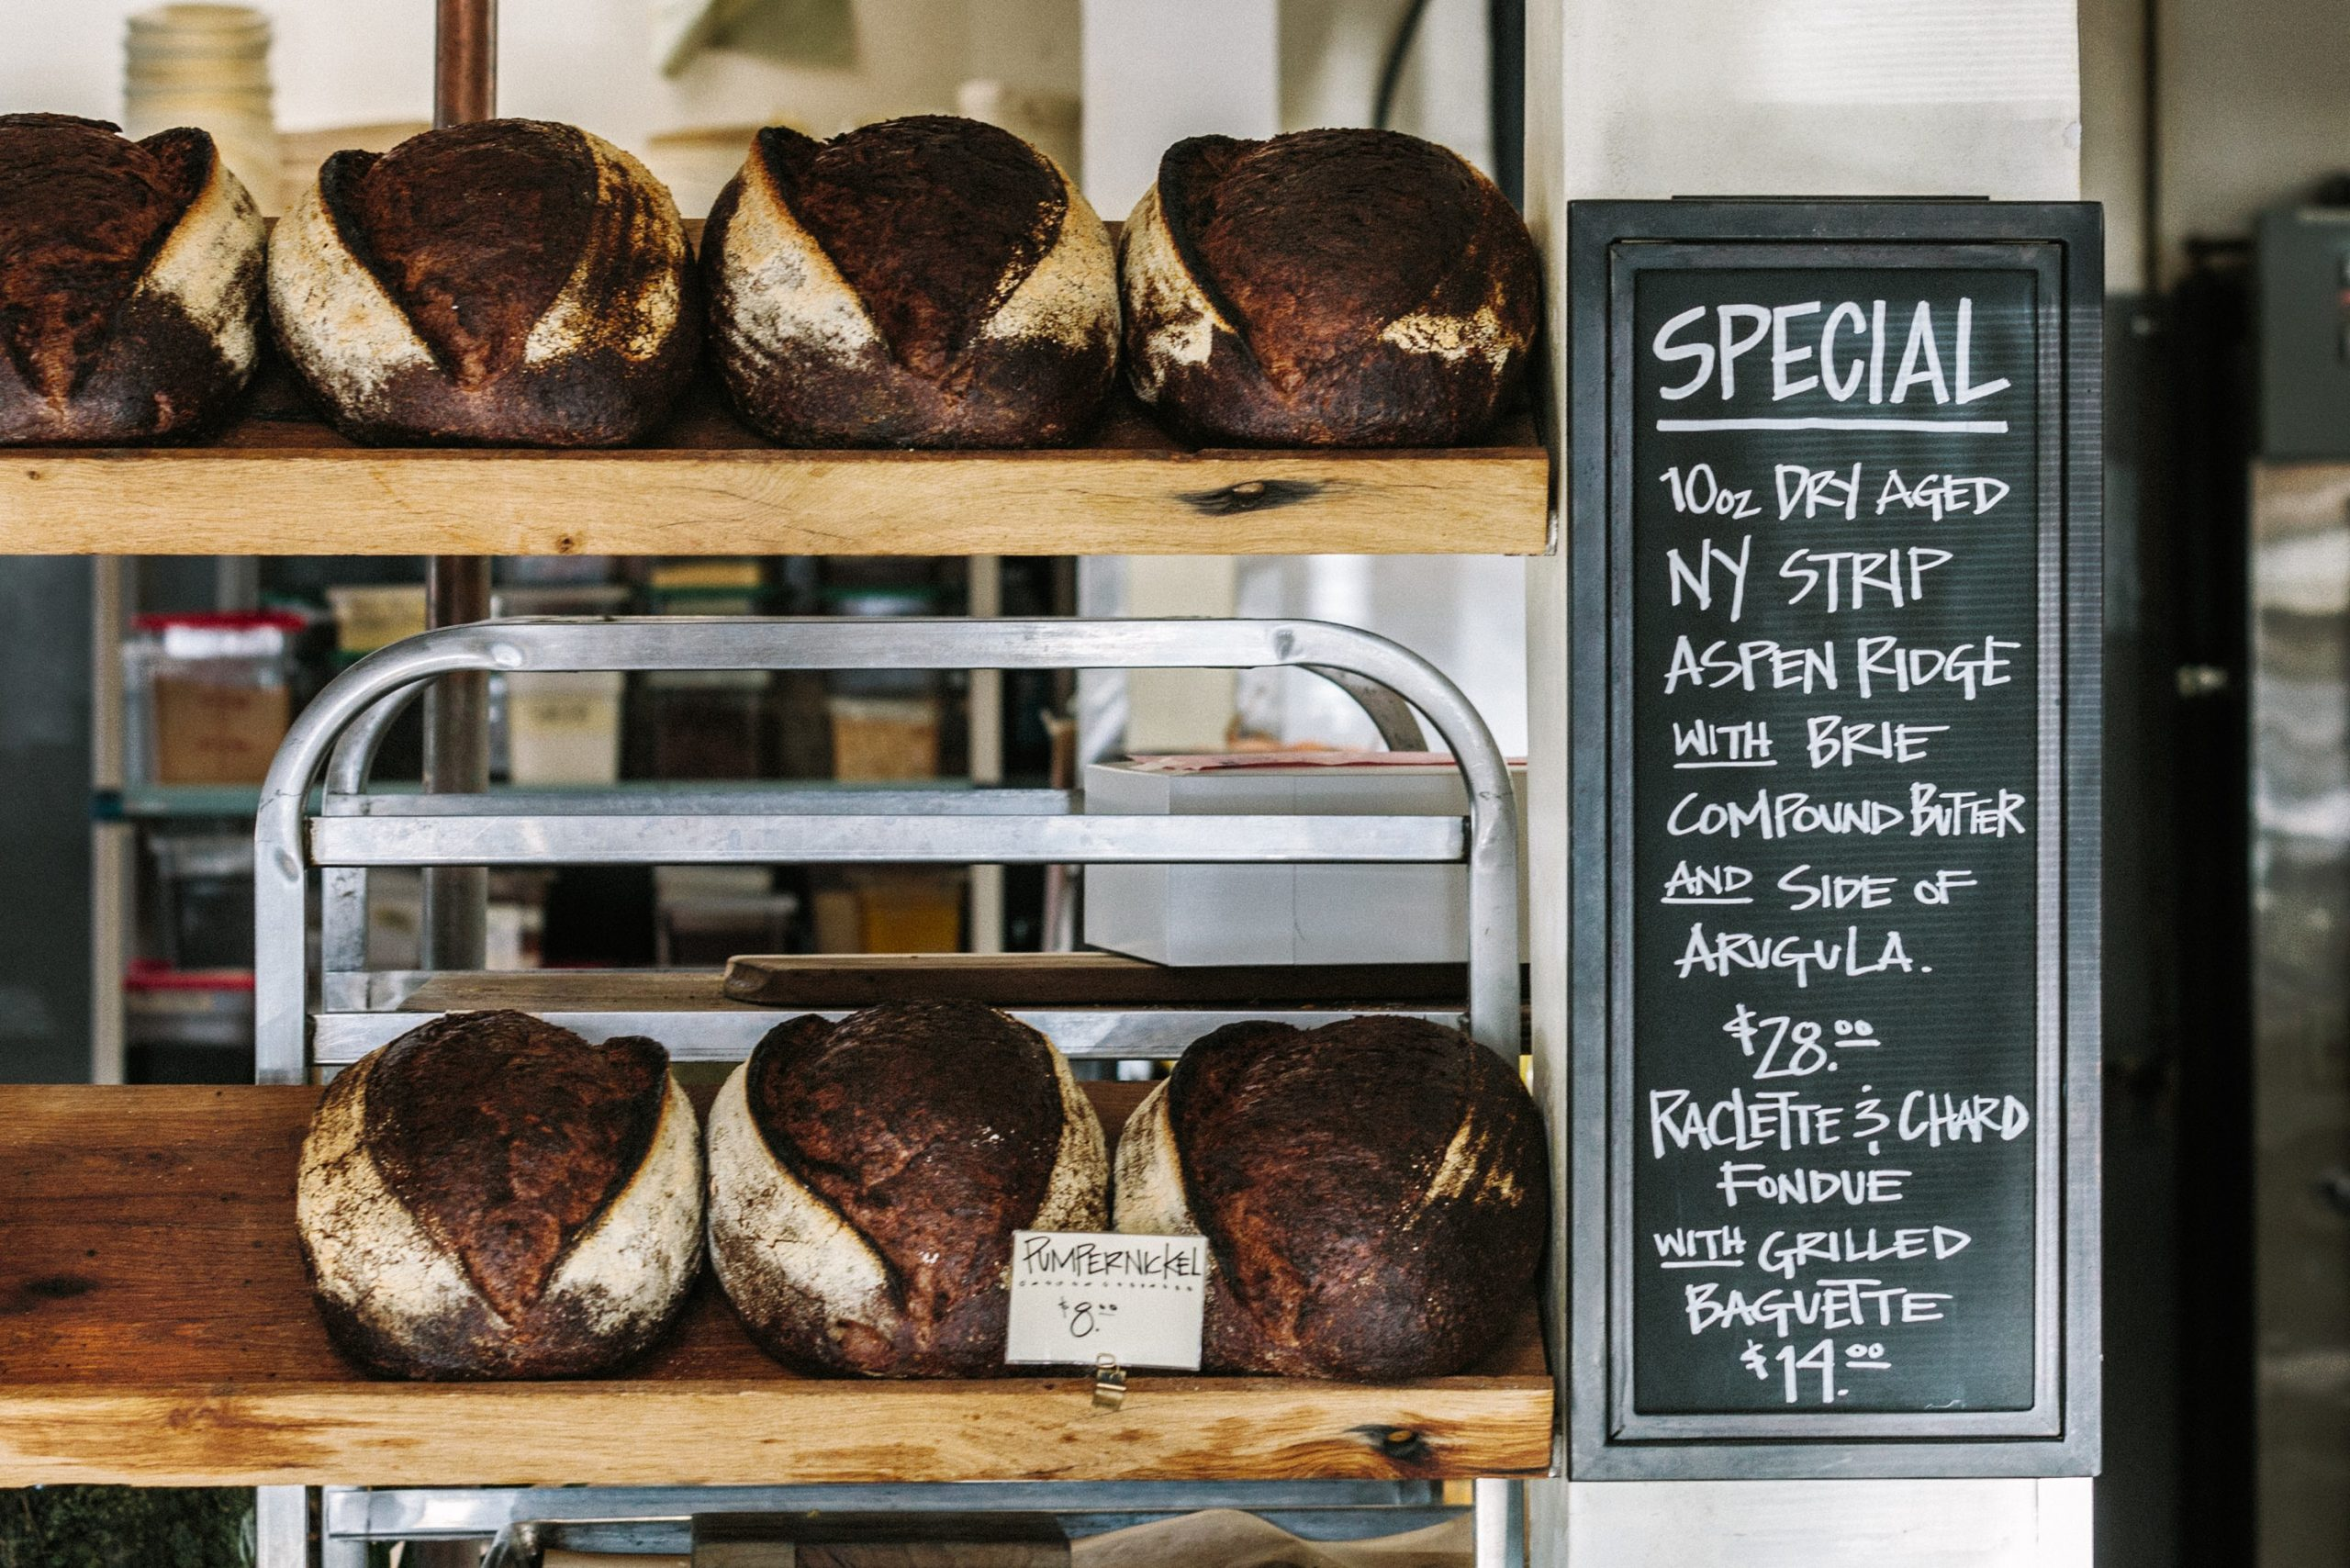 Boosting Sales with Schedule-controlled Special Menus